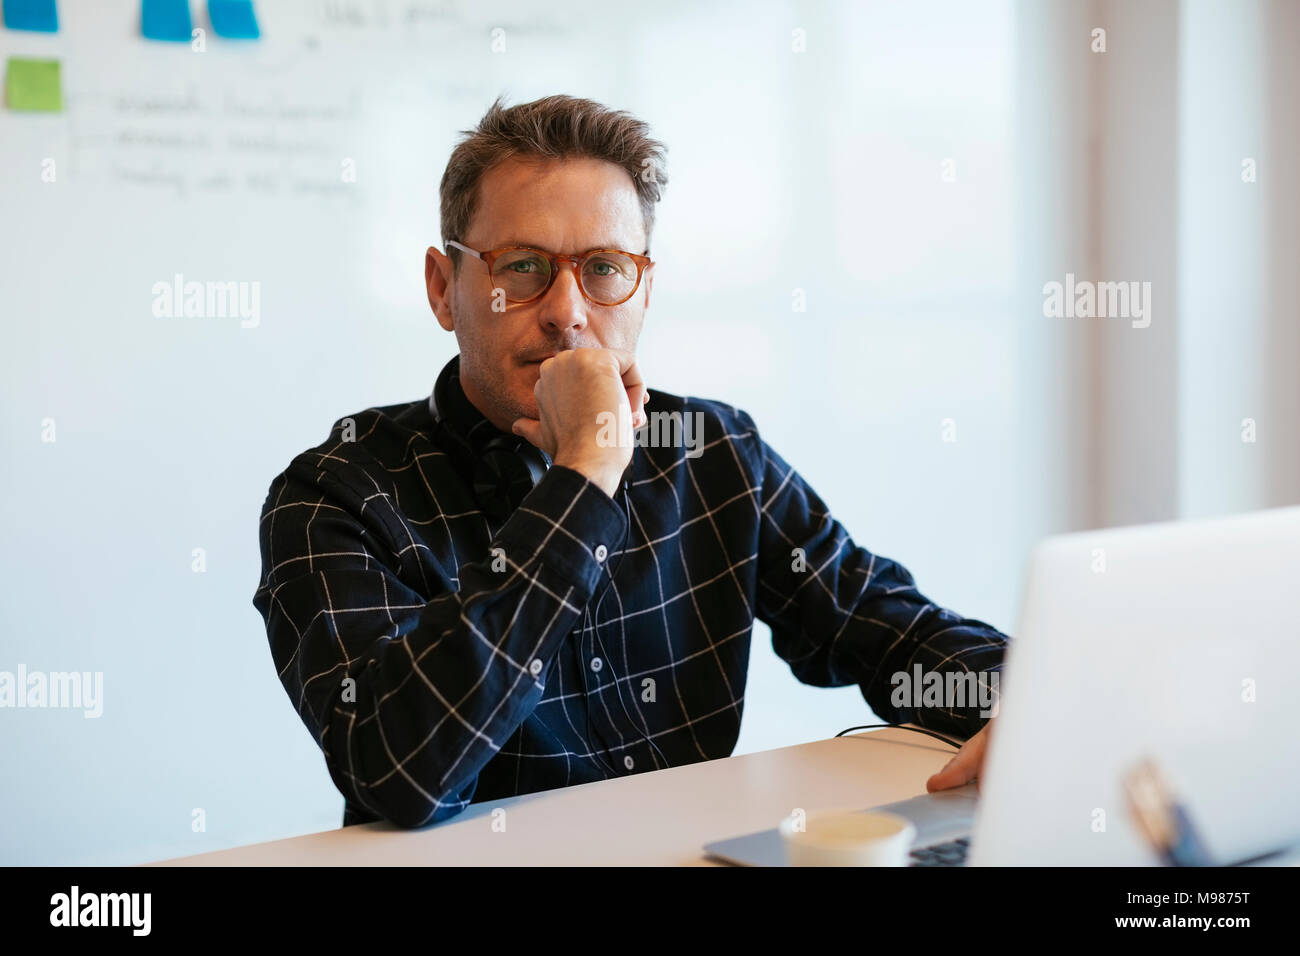 Portrait of serious businessman with laptop at desk in office - Stock Image